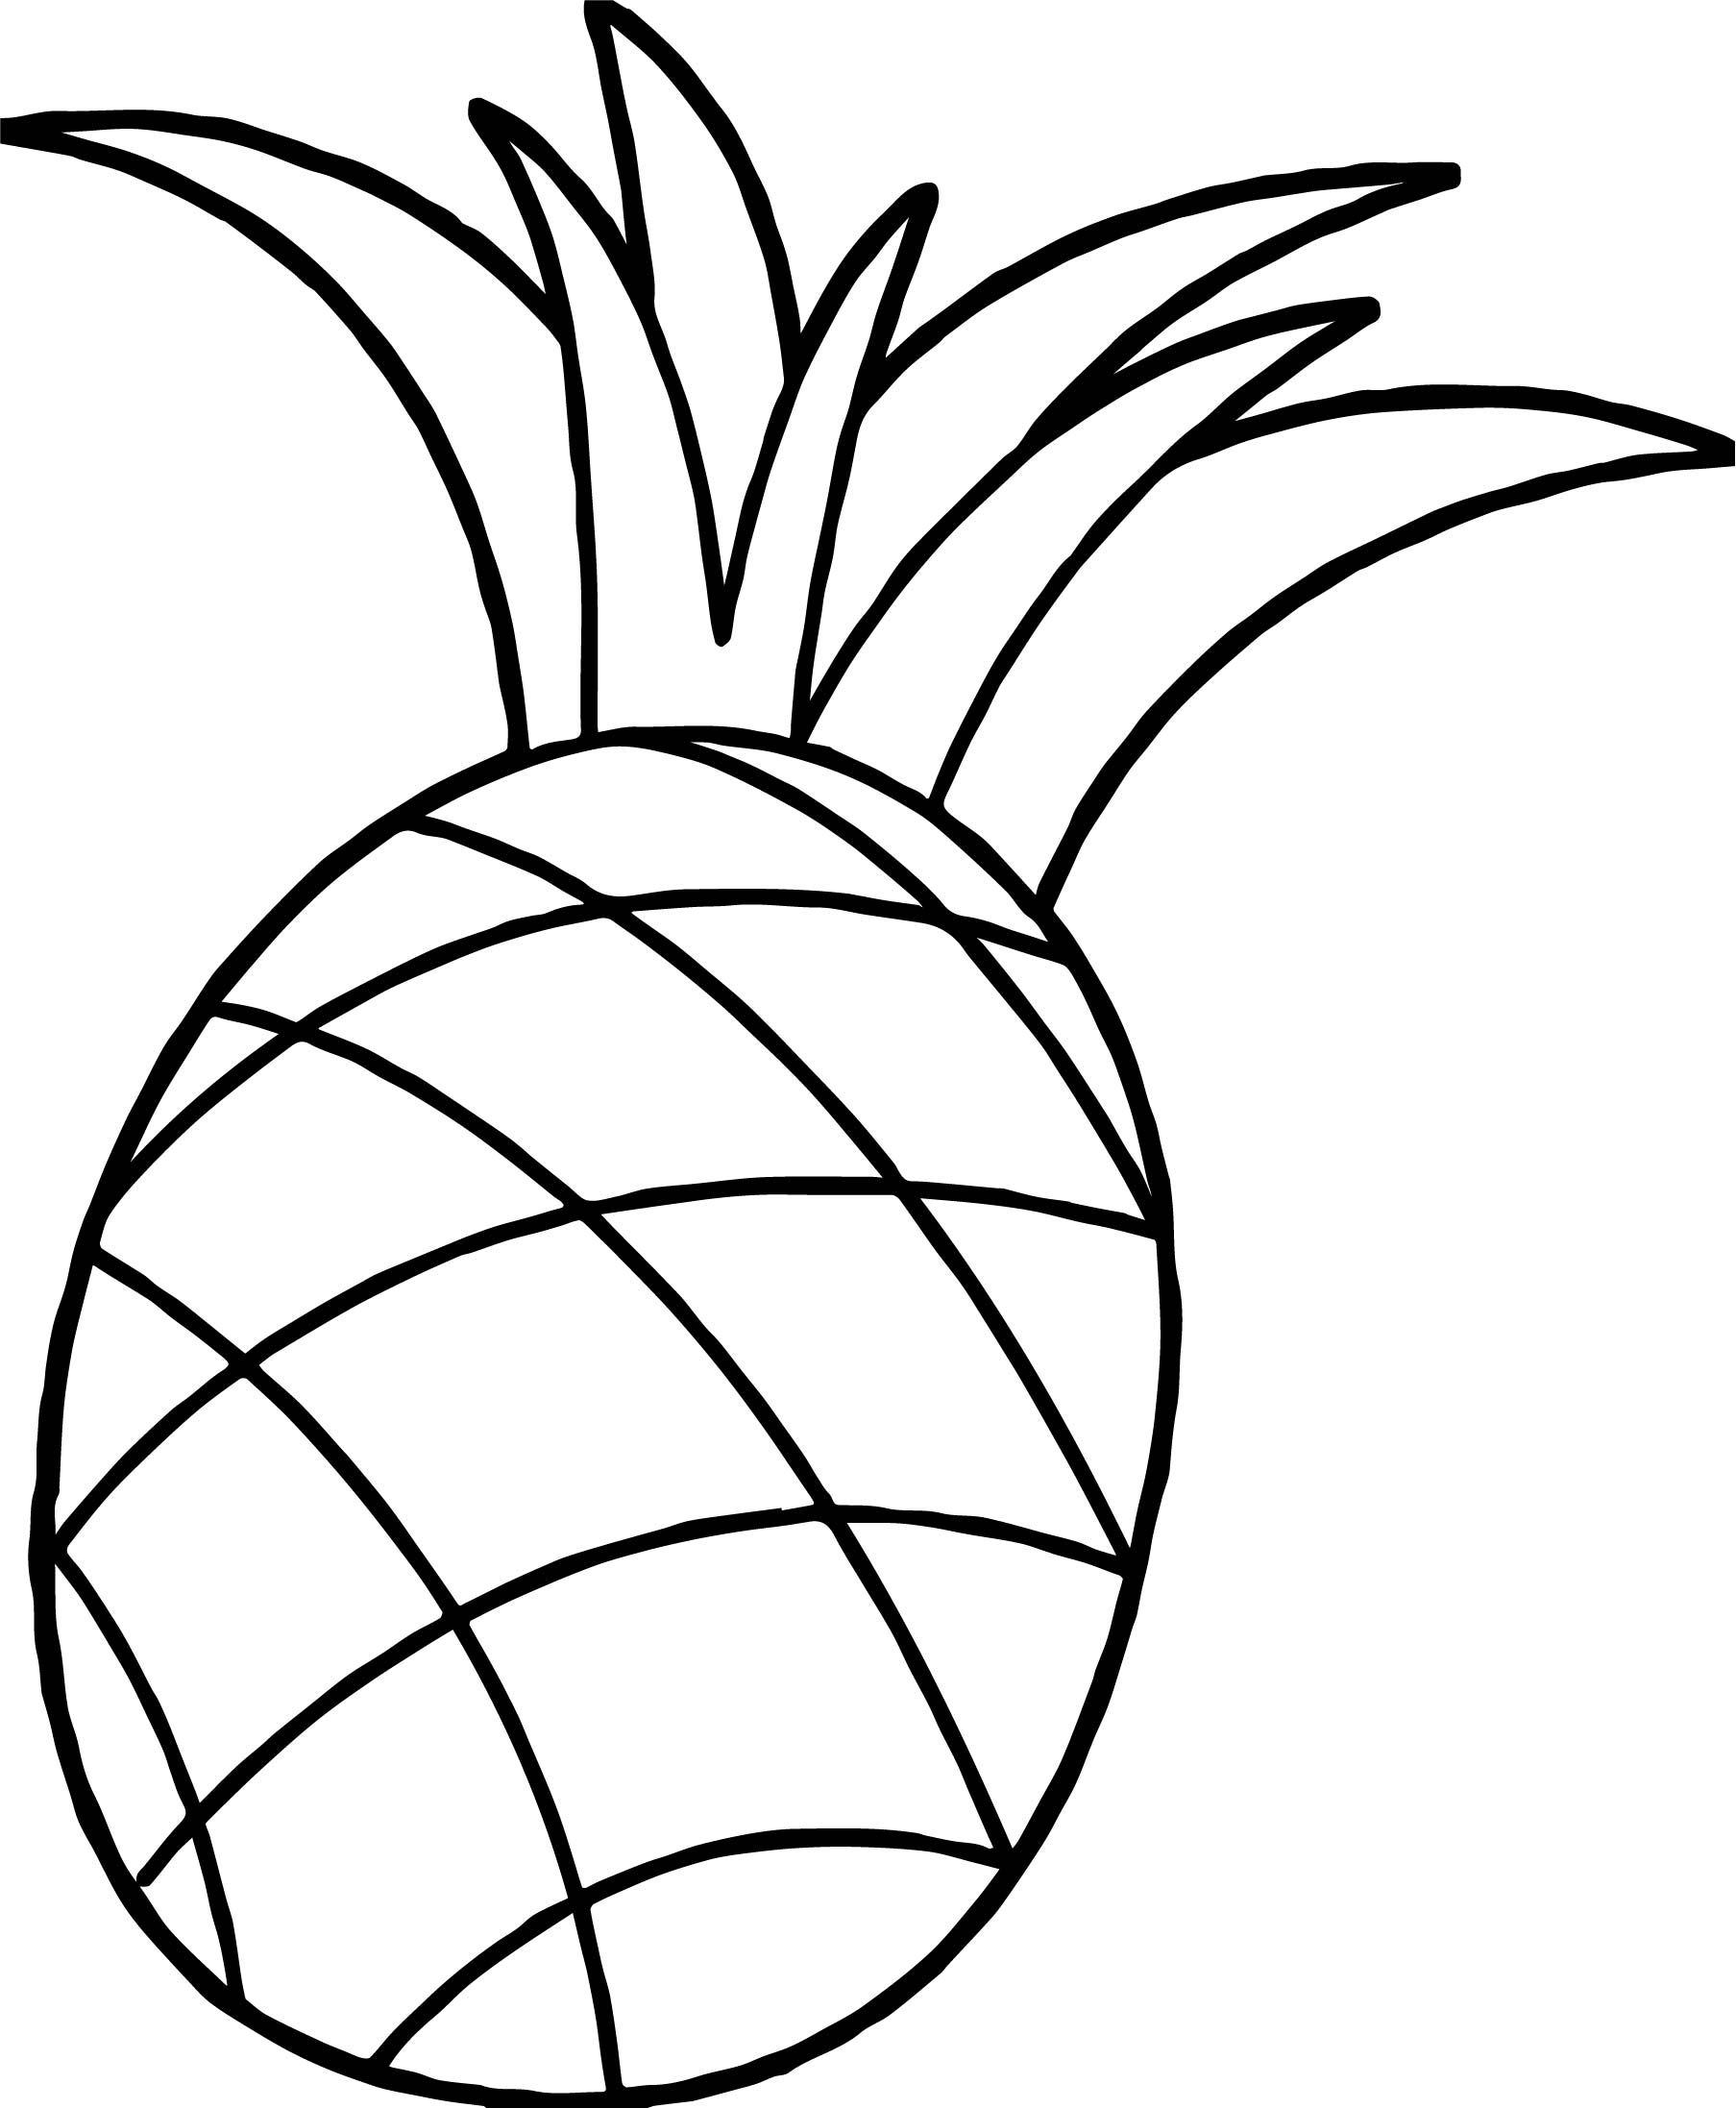 Awesome One Pineapple Coloring Page Cute Pineapple Coloring